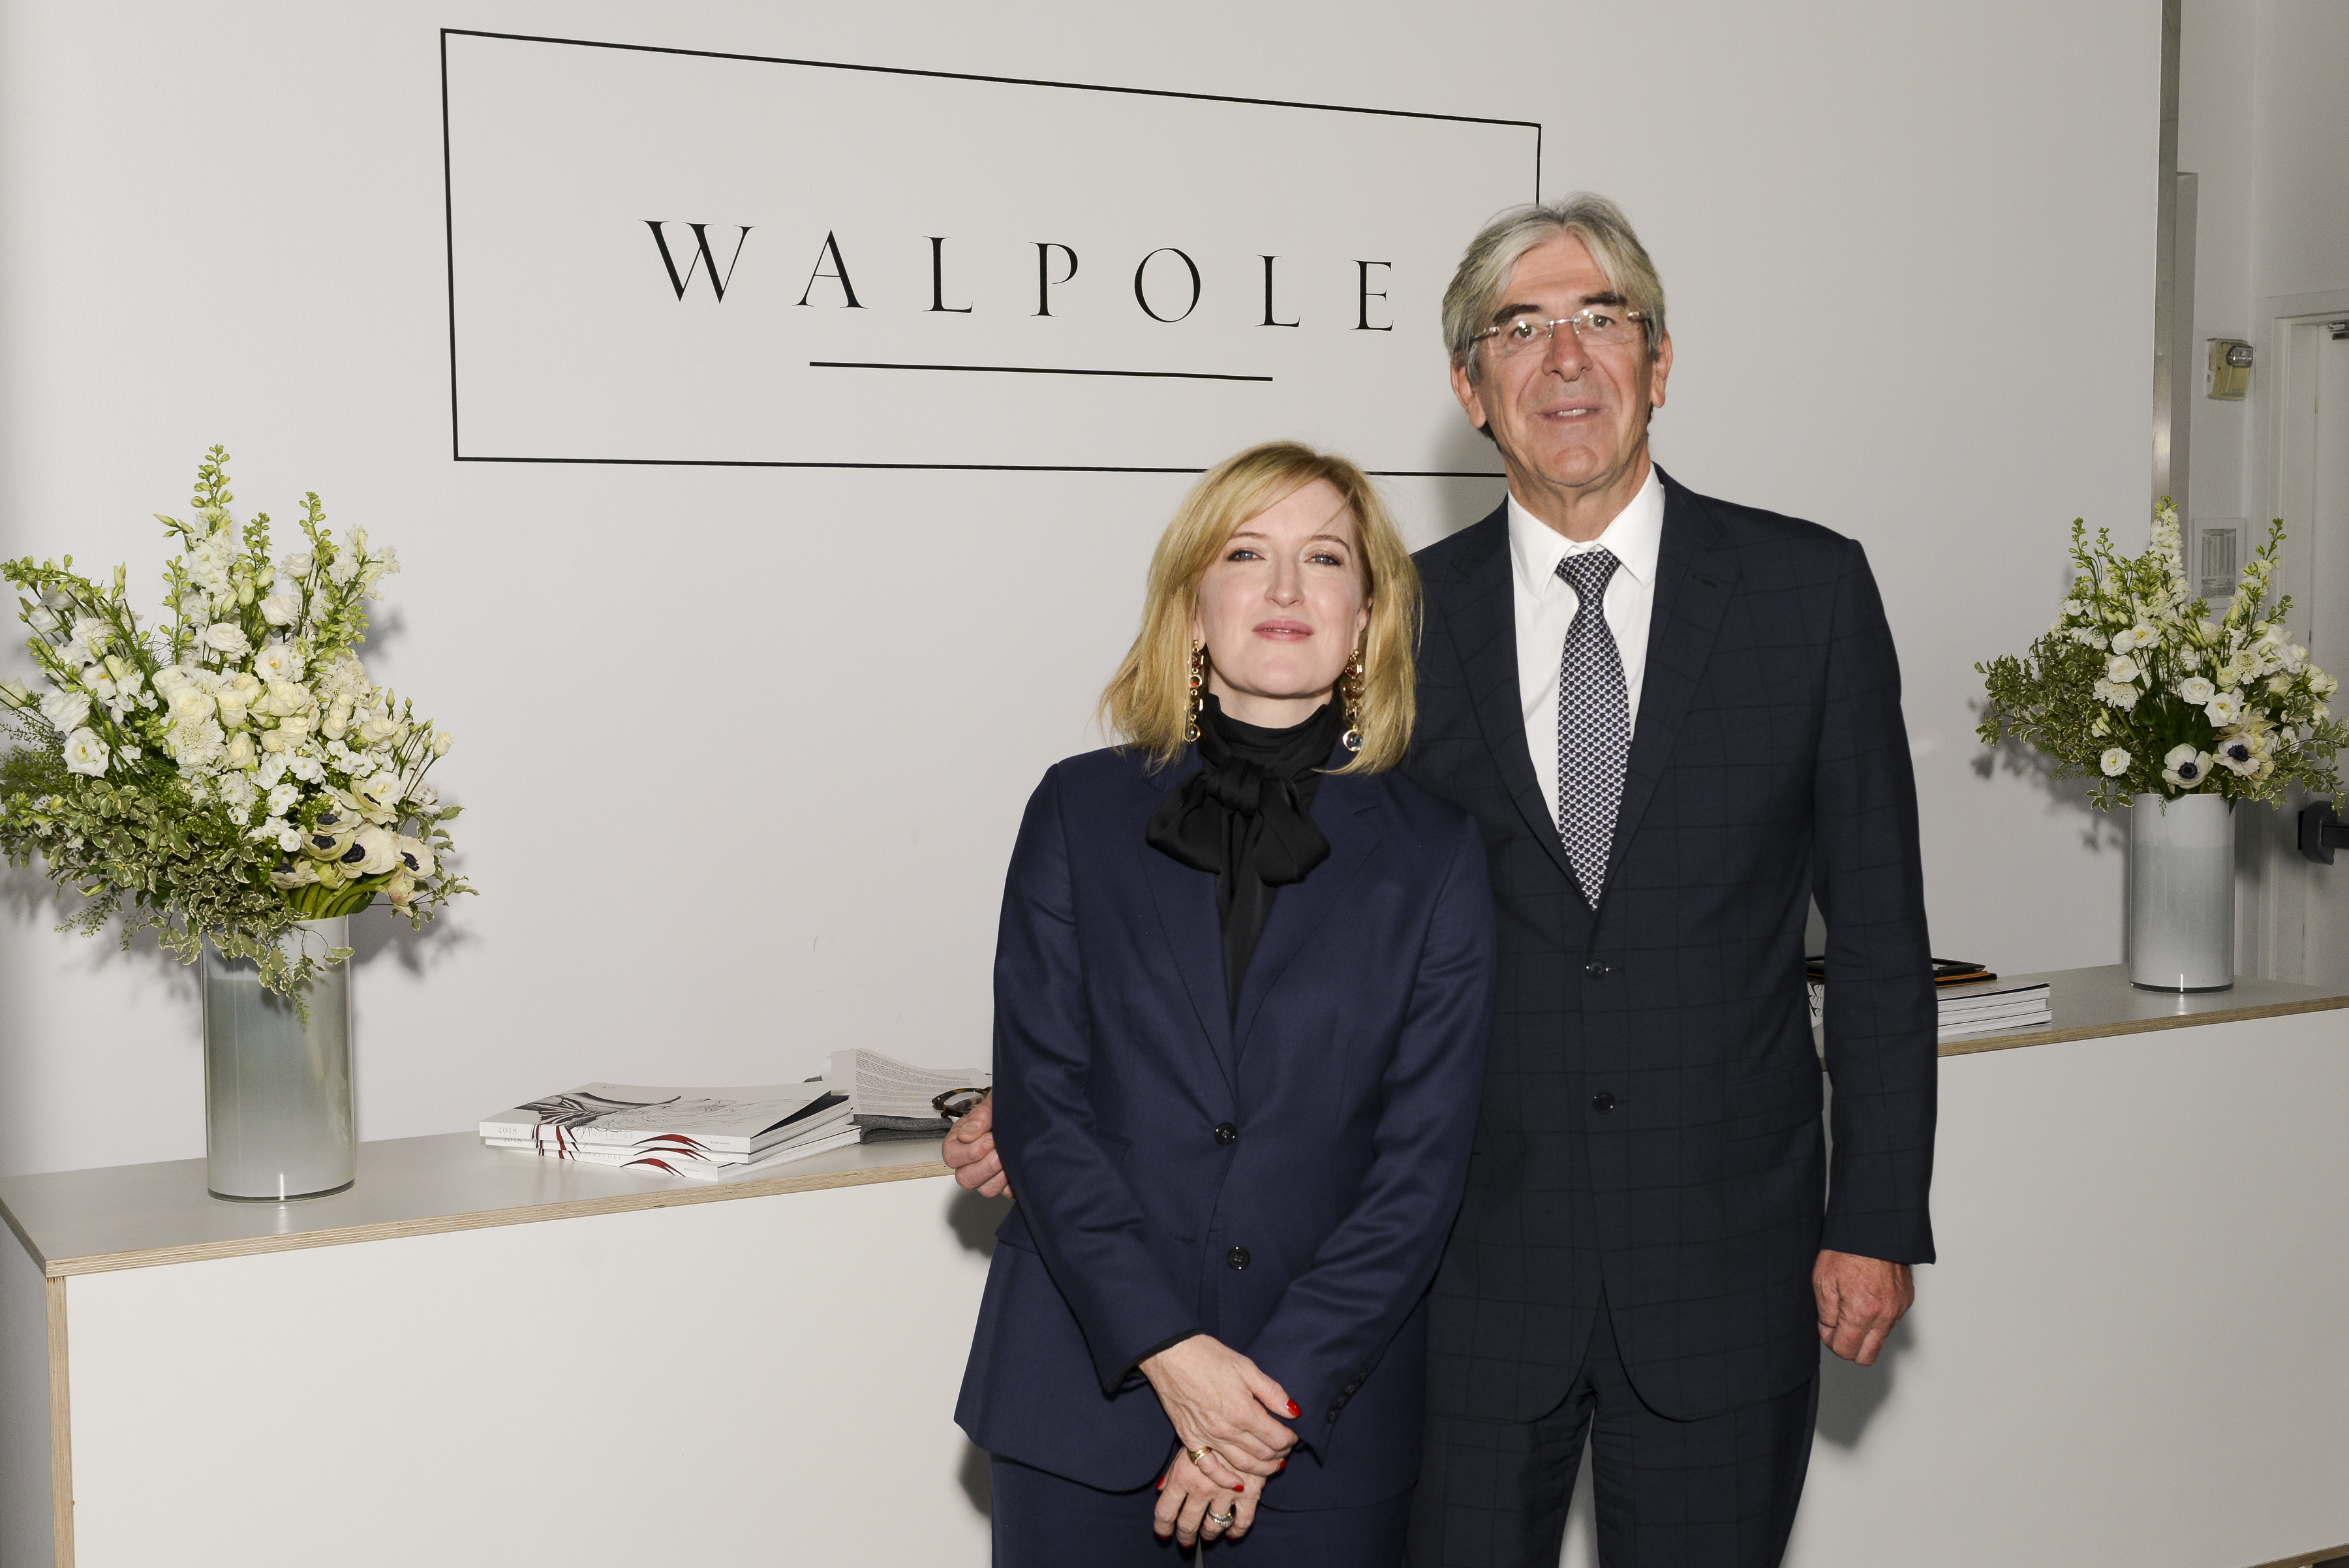 Helen Brocklebank, ceo of Walpole, and Michael Ward, managing director at Harrods.